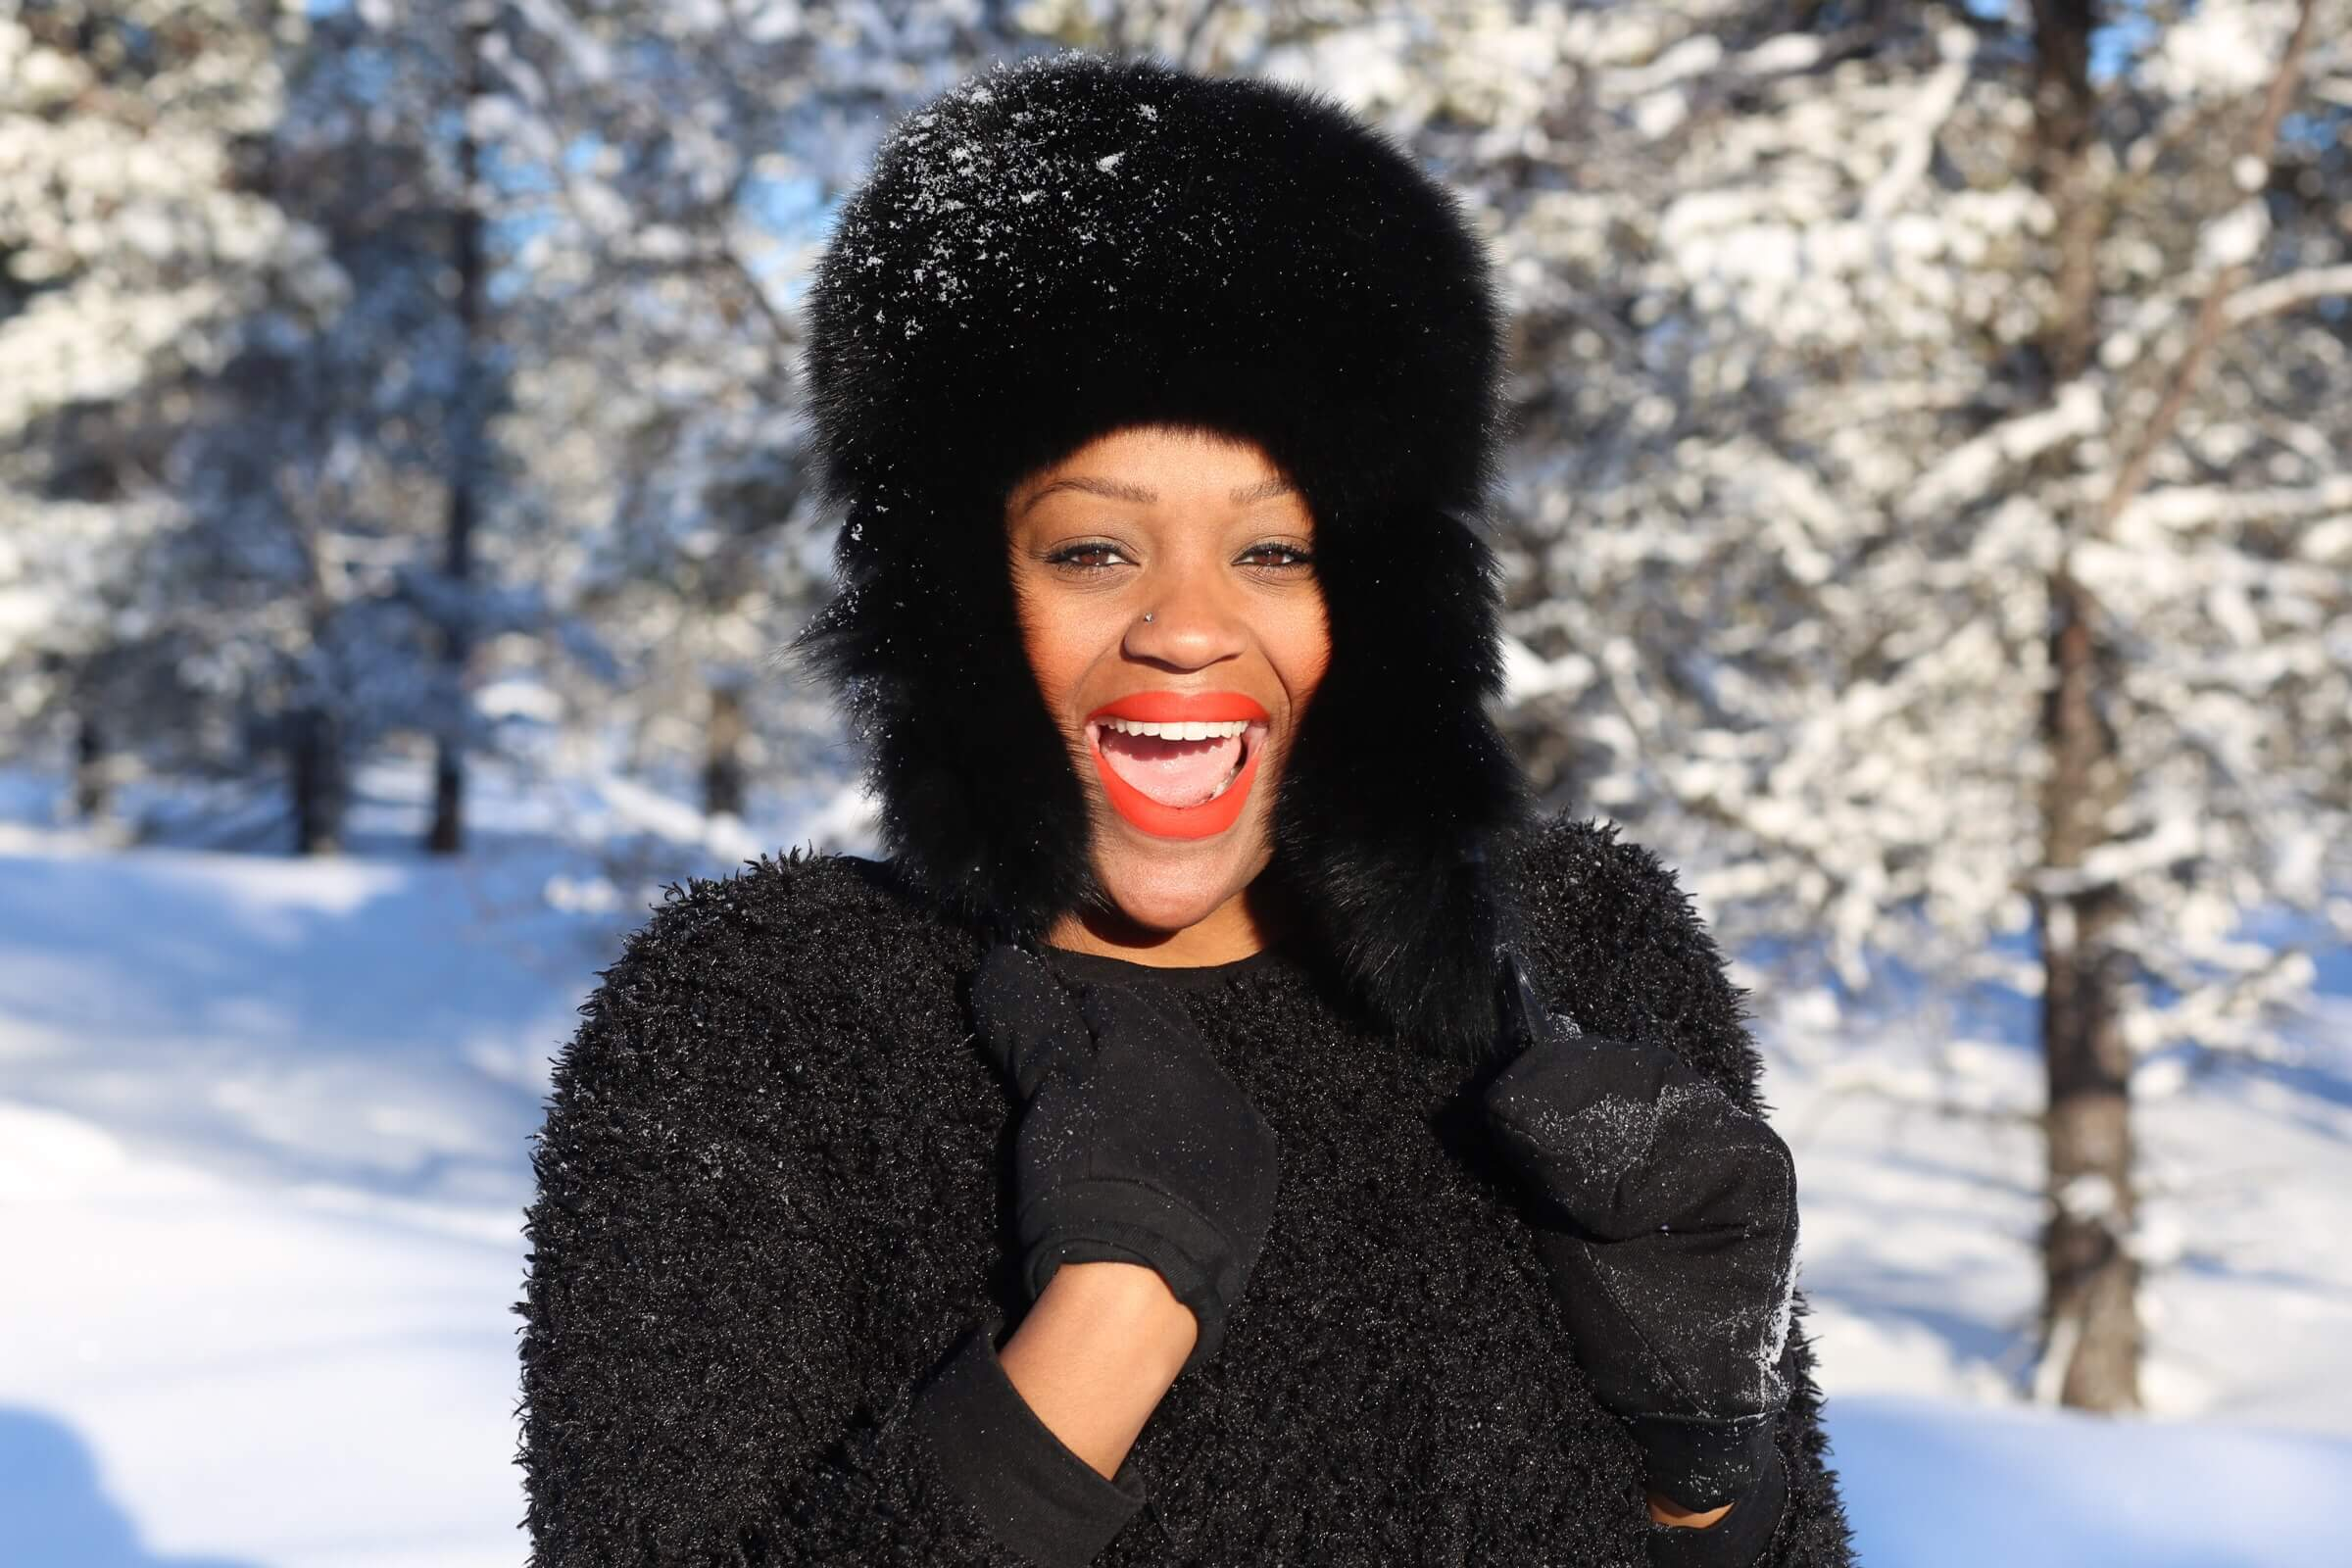 Black female solo travel - Rachel in Arctic, Finland